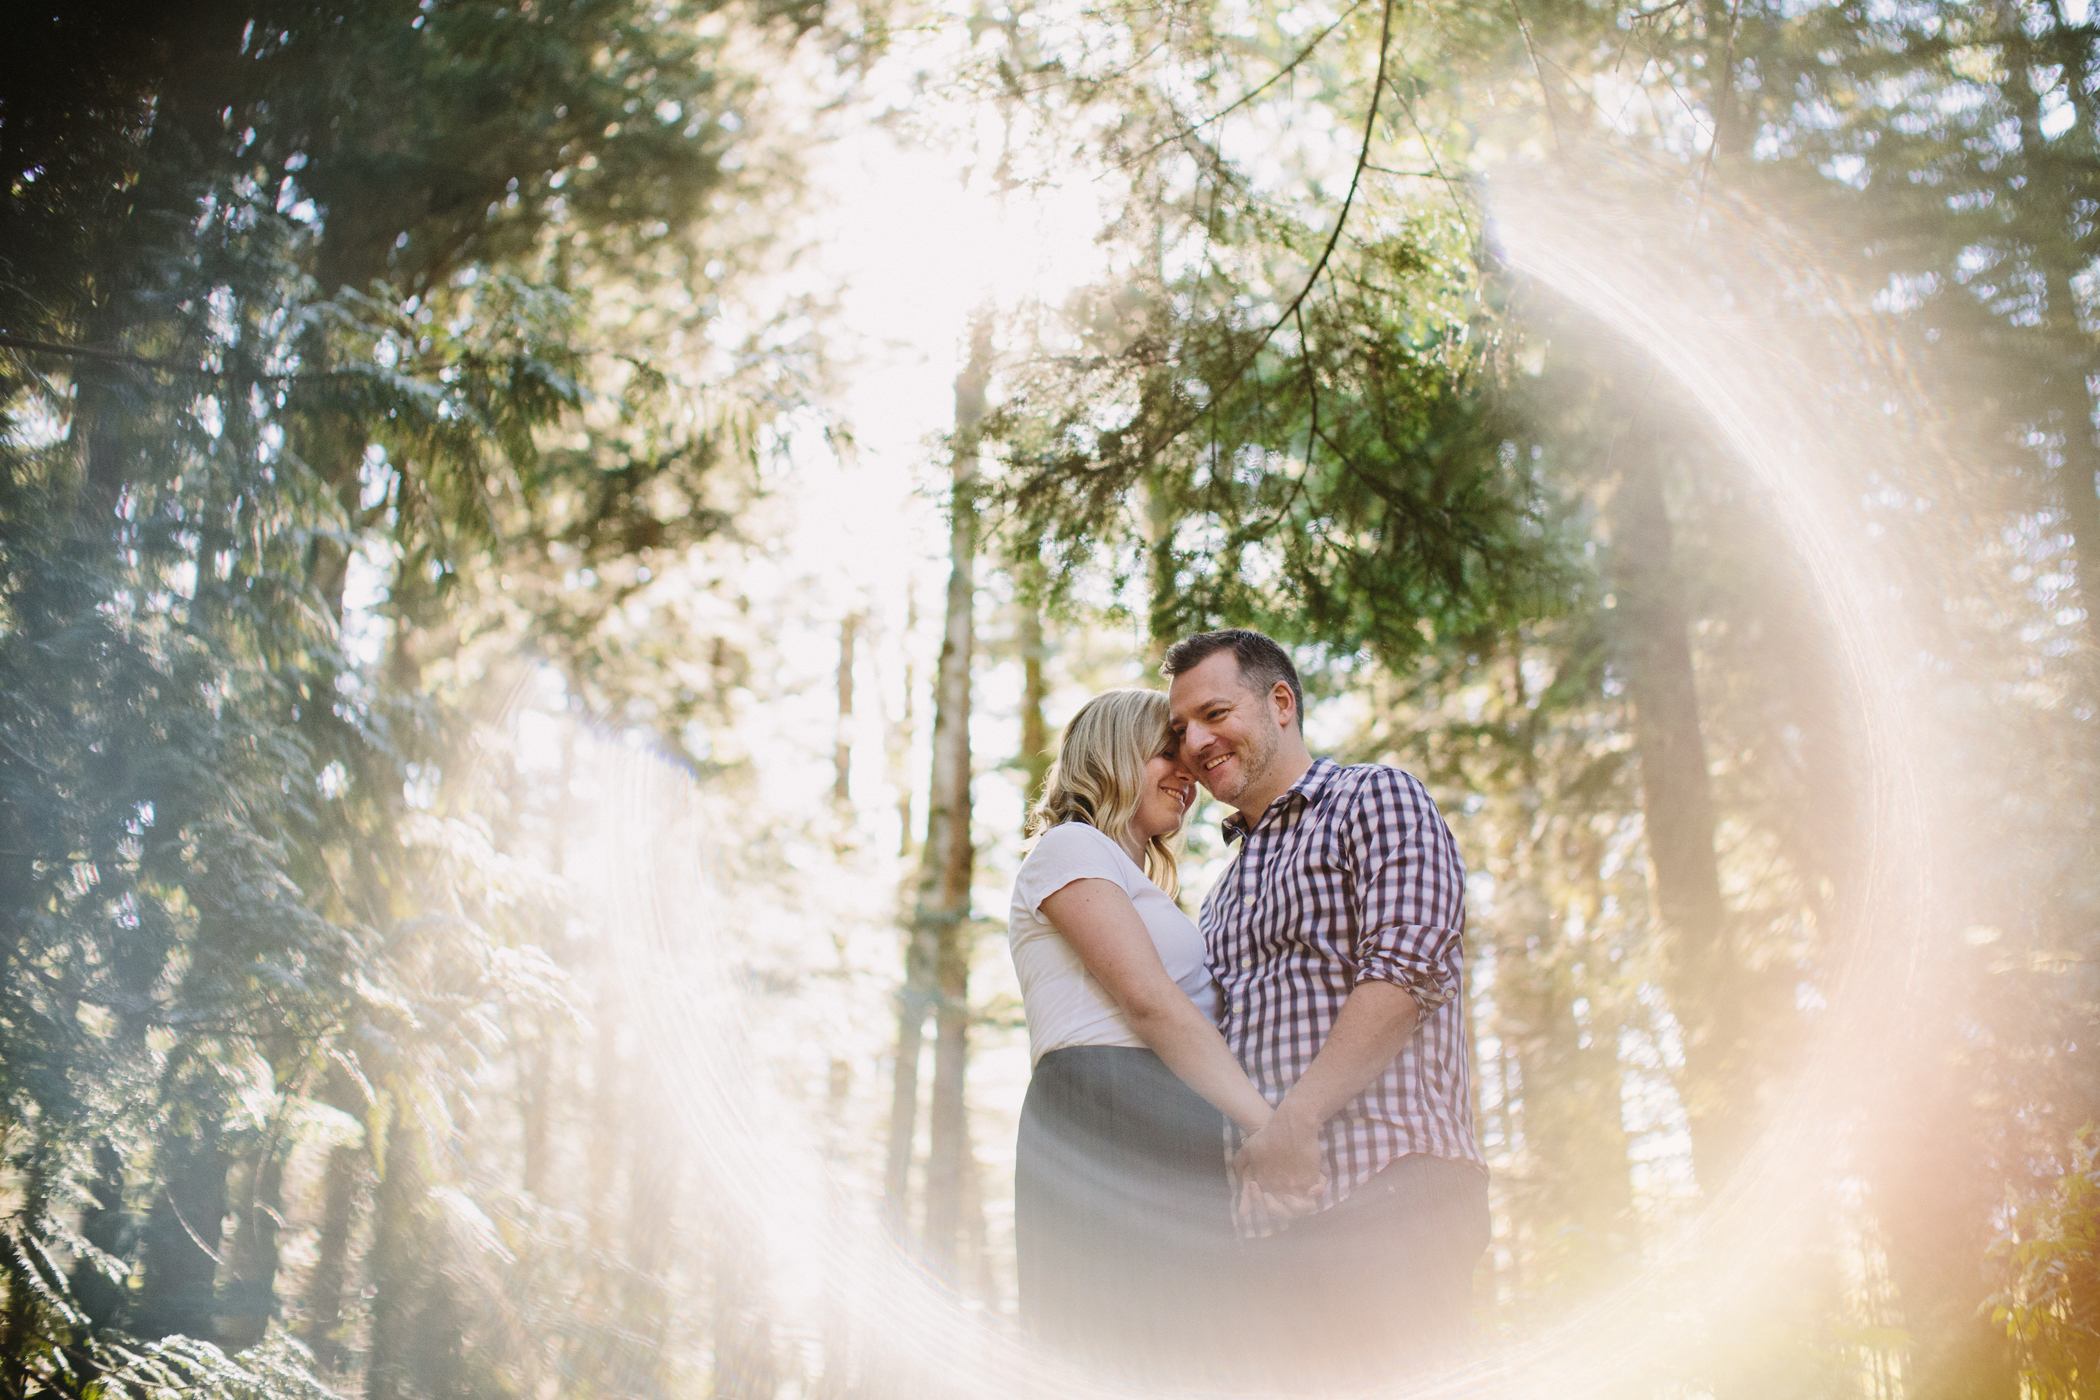 Coastal Forest Couple with Lens Flare